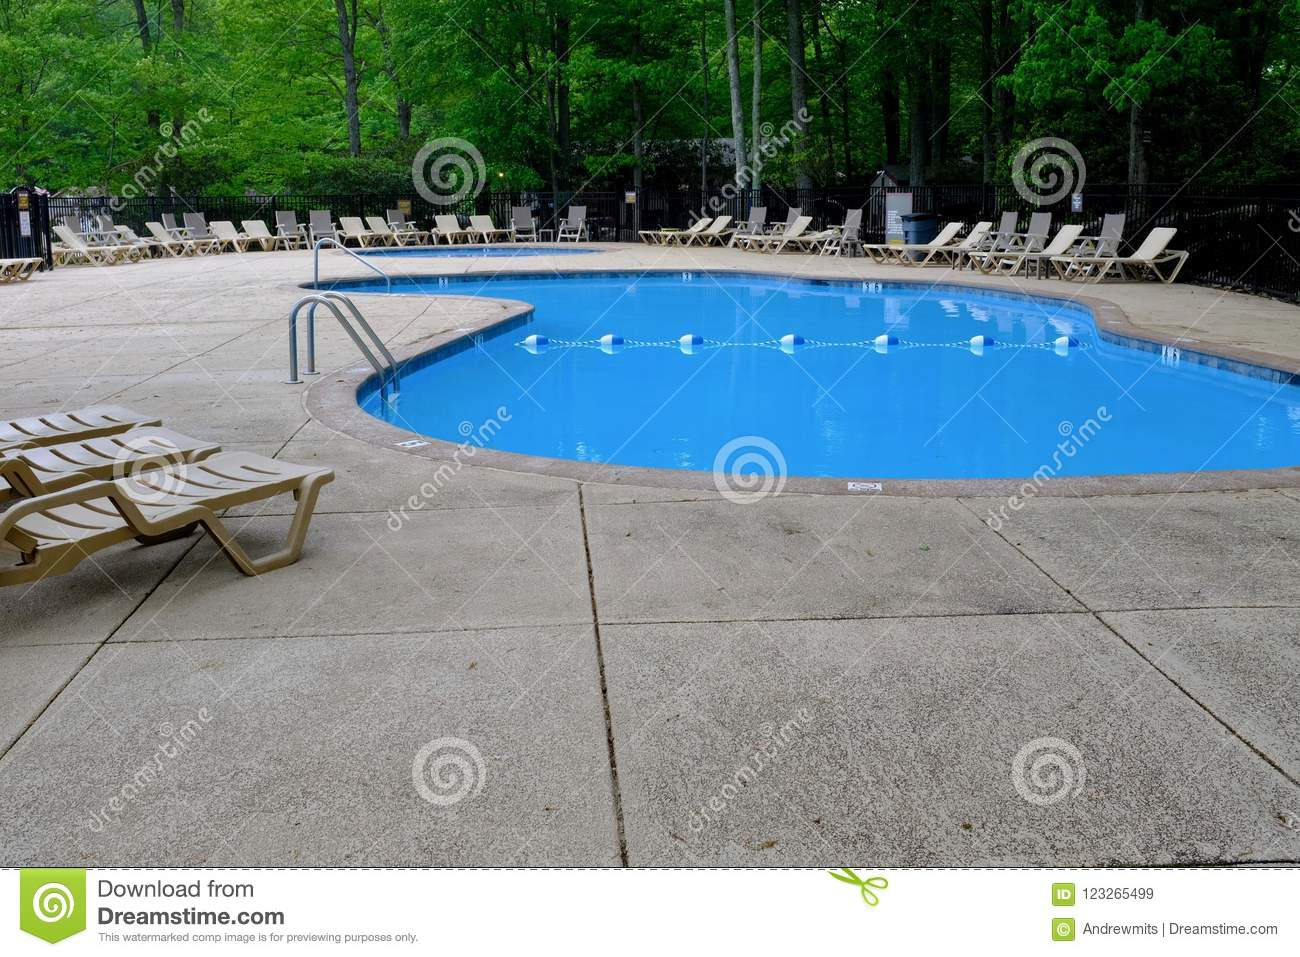 Pool Deck Chairs Pool Deck And Lounge Chairs In Green Forest Stock Image Image Of